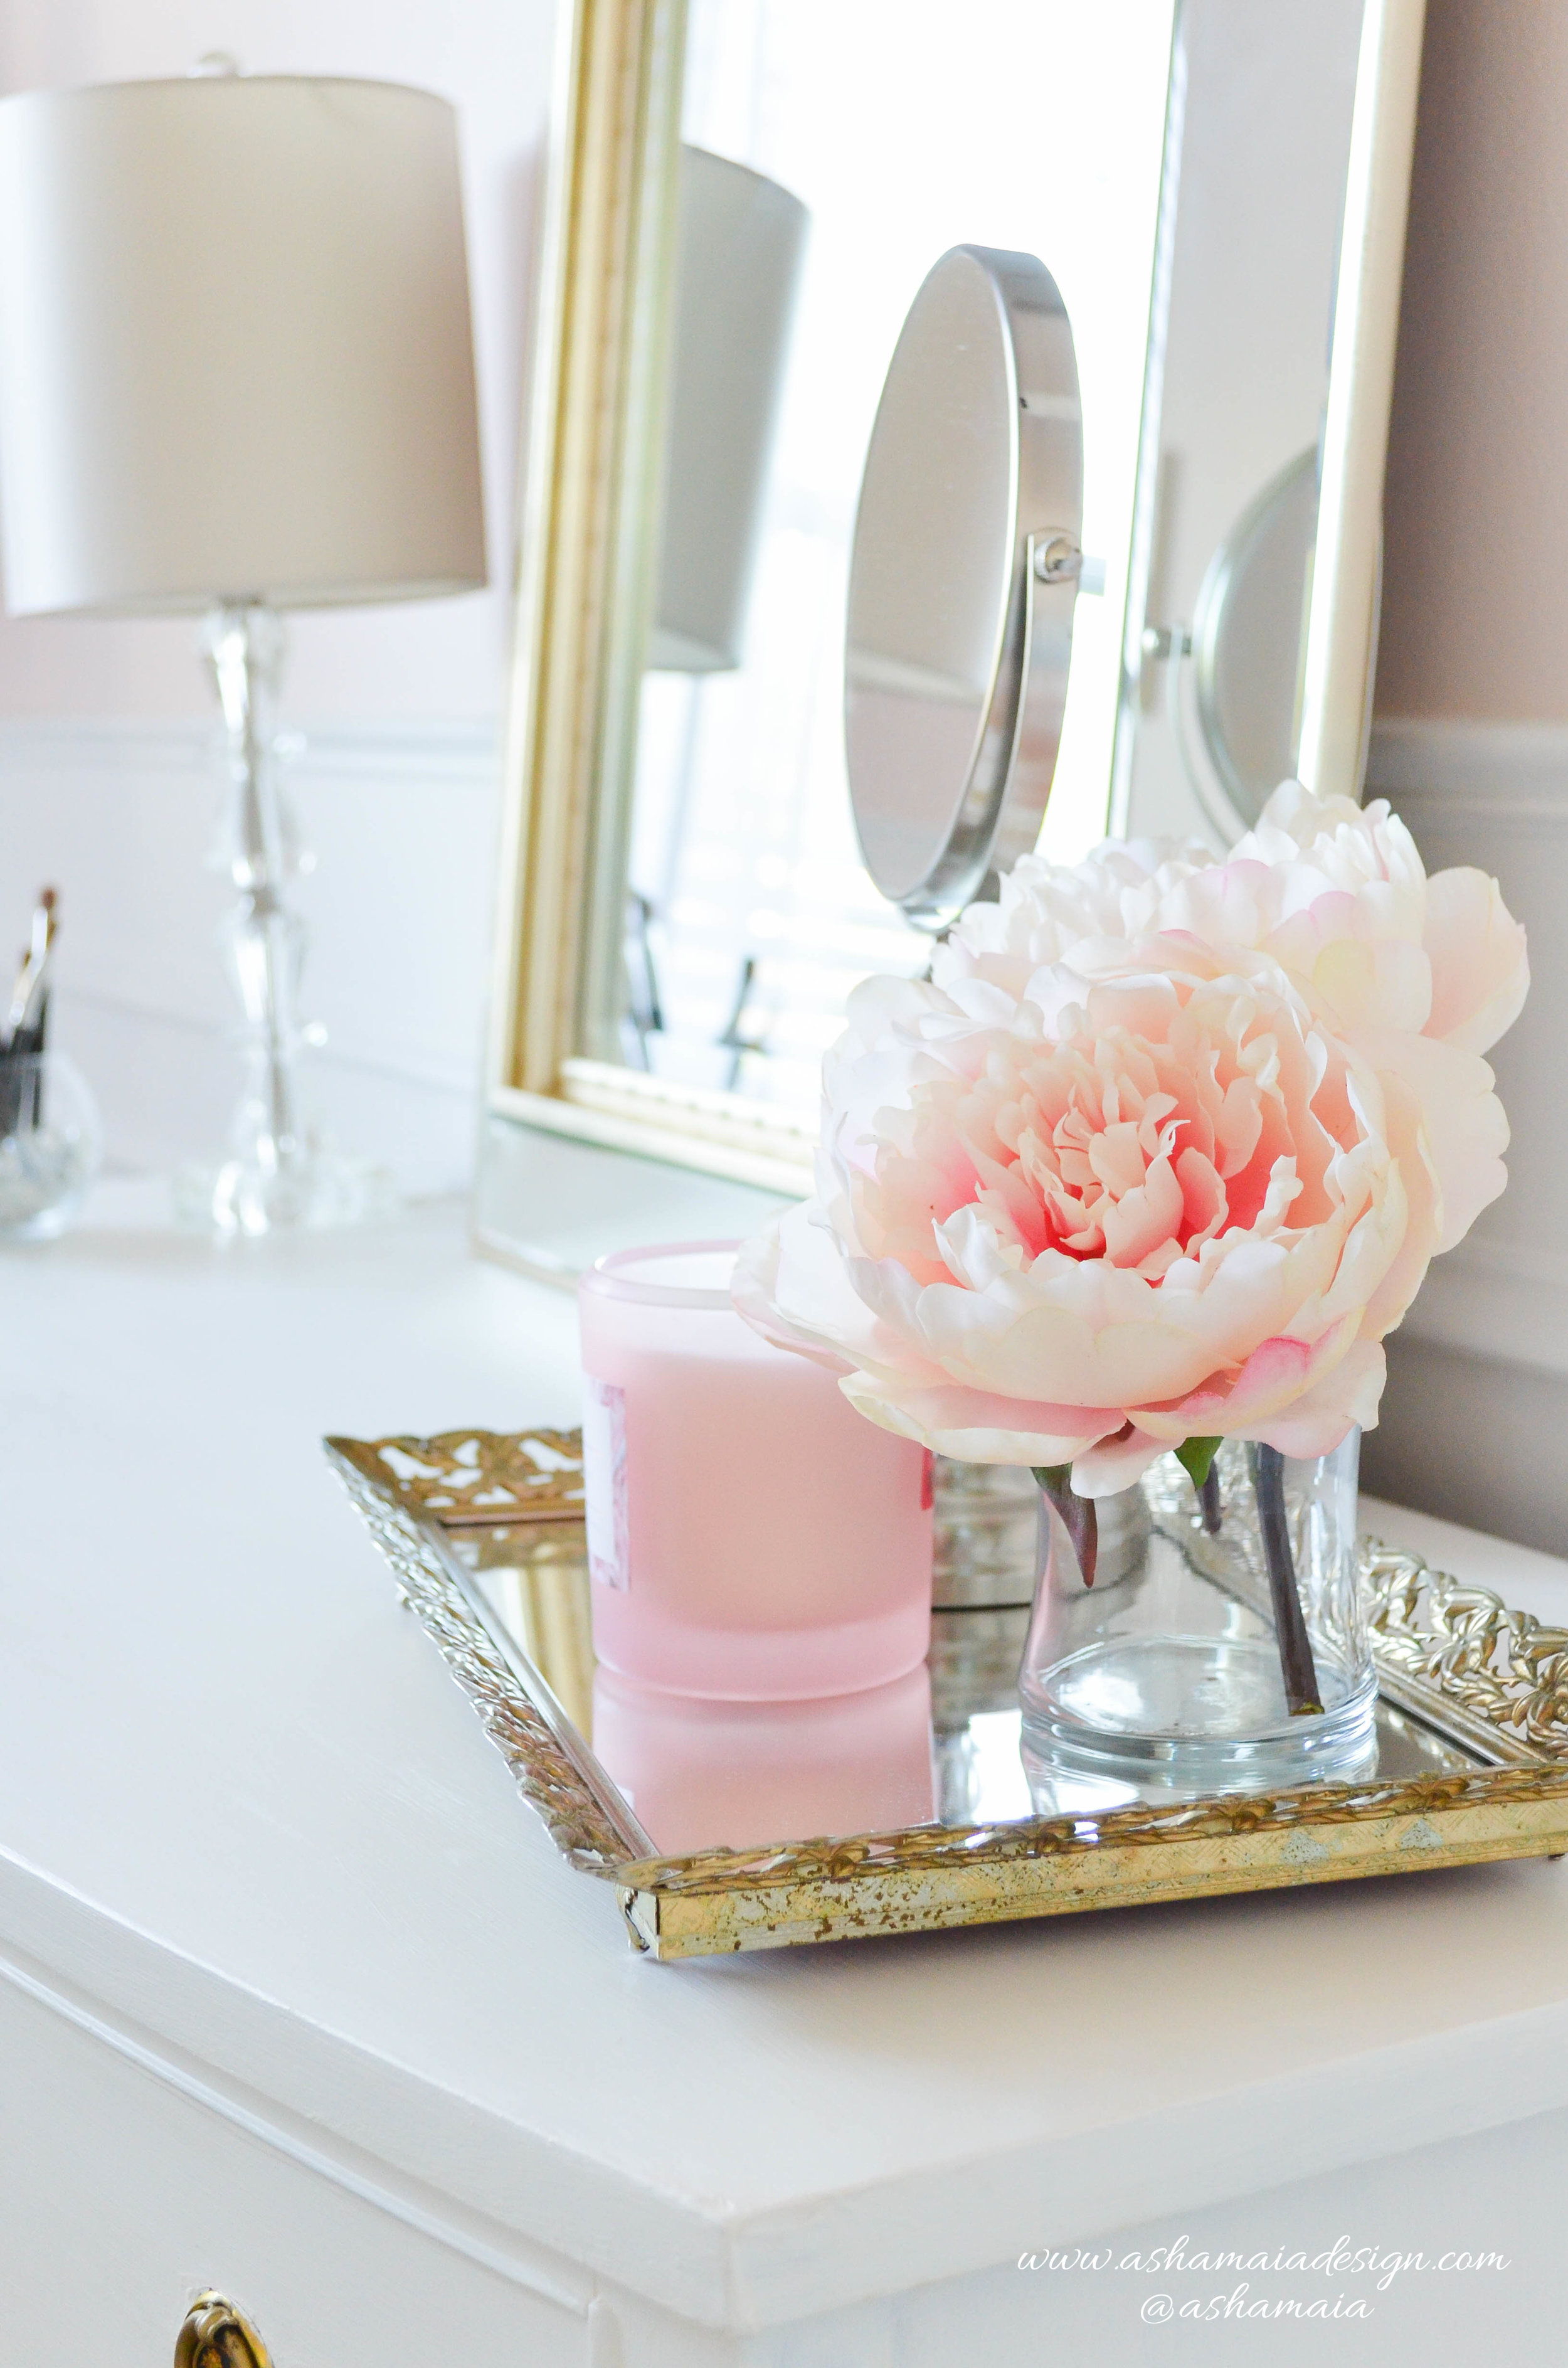 Intimate White Parisian Style Elegant Beauty Room with White Wainscoting, White Traditional Makeup Vanity with Gilded Mirror and Peonies in Vase